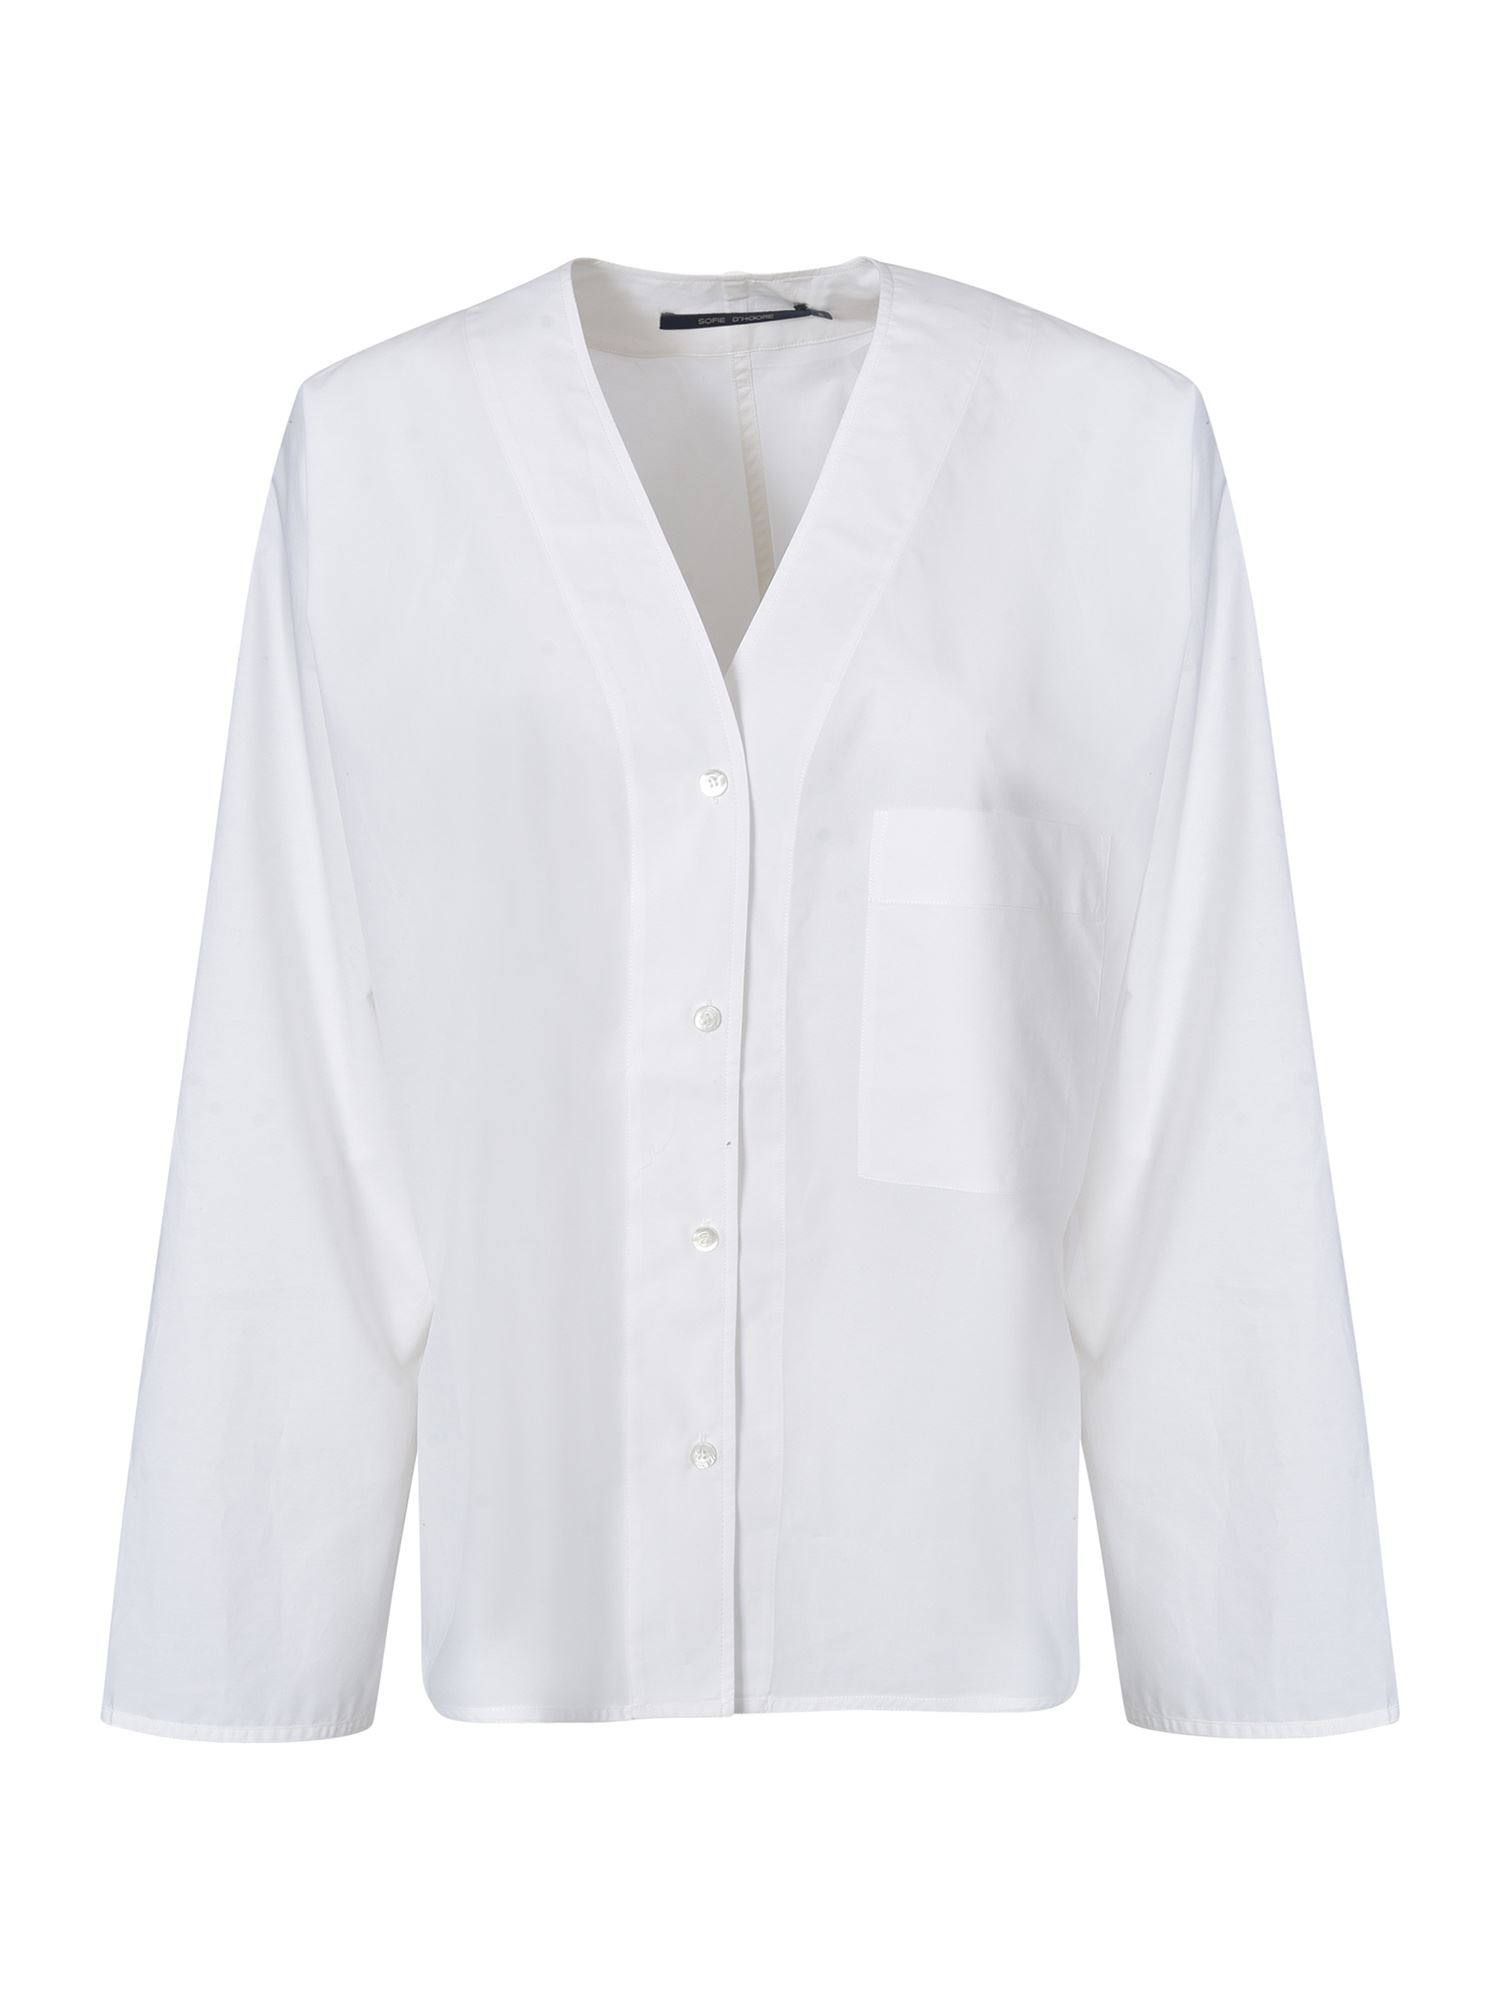 Sofie D'hoore Cottons V-NECK WIDE SLEEVE SHIRT IN WHITE